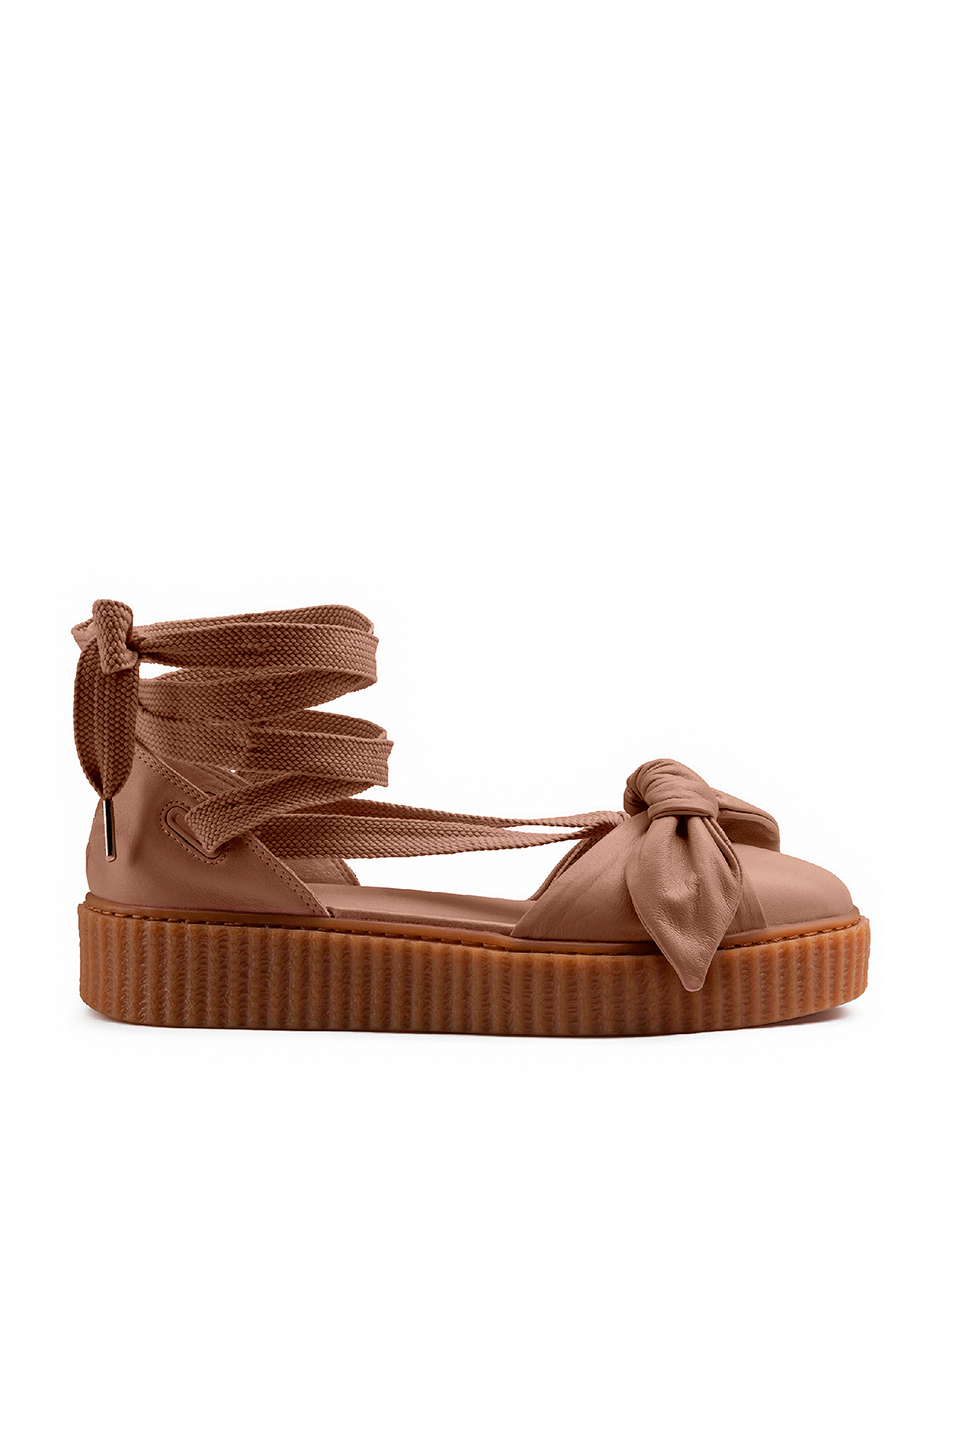 Fenty by Puma Bow Leather Creeper Sandals in Neutrals,Brown